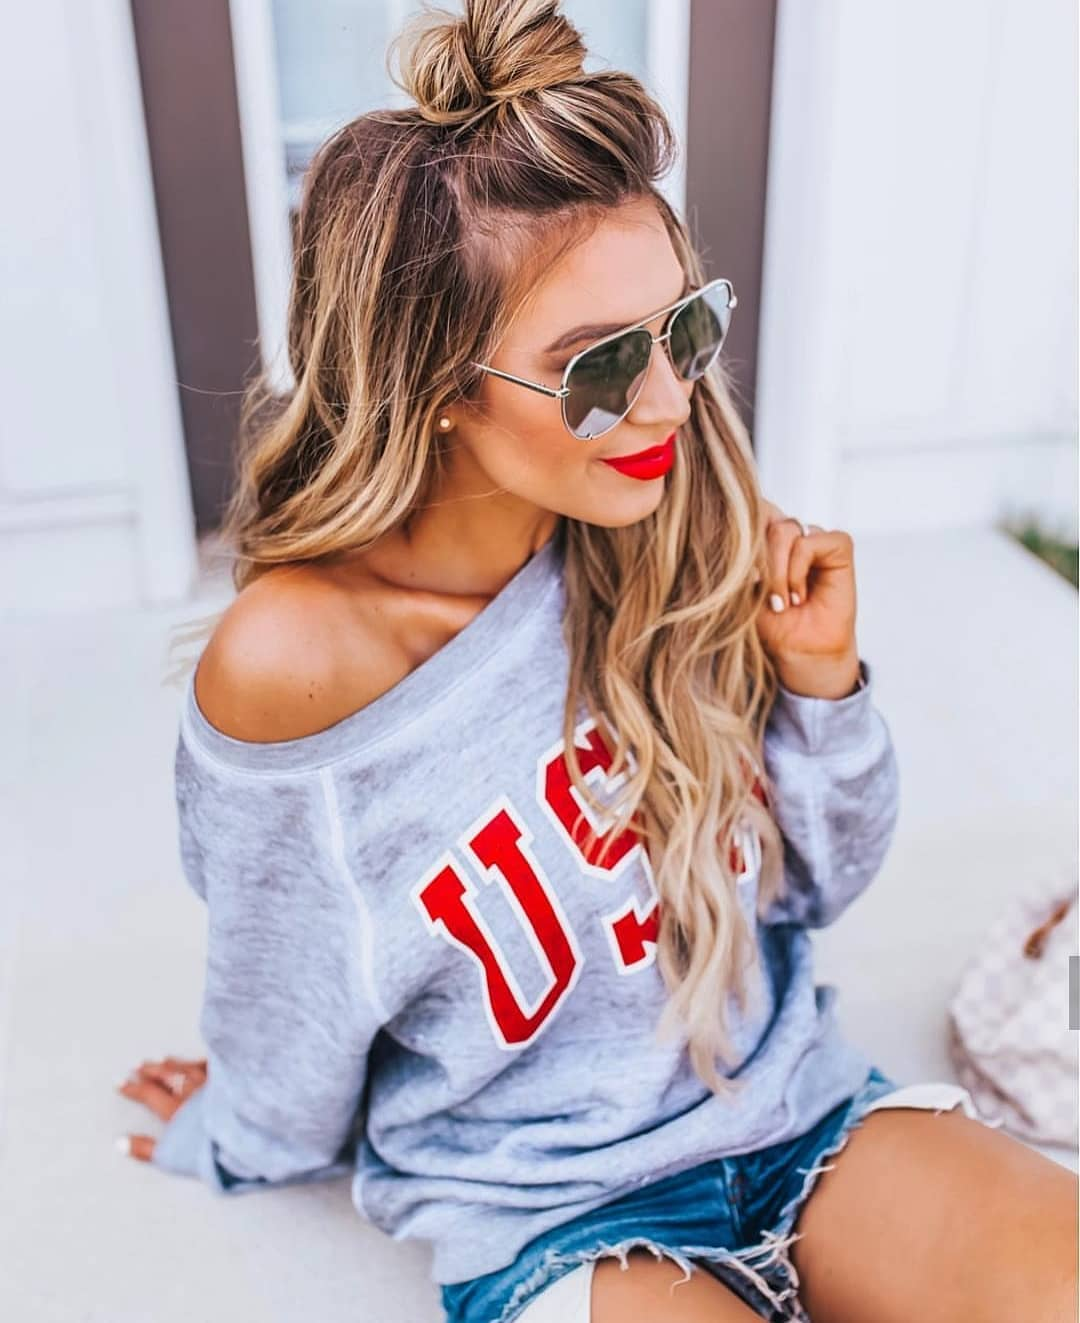 Off Shoulder Sweatshirt For Summer 2020